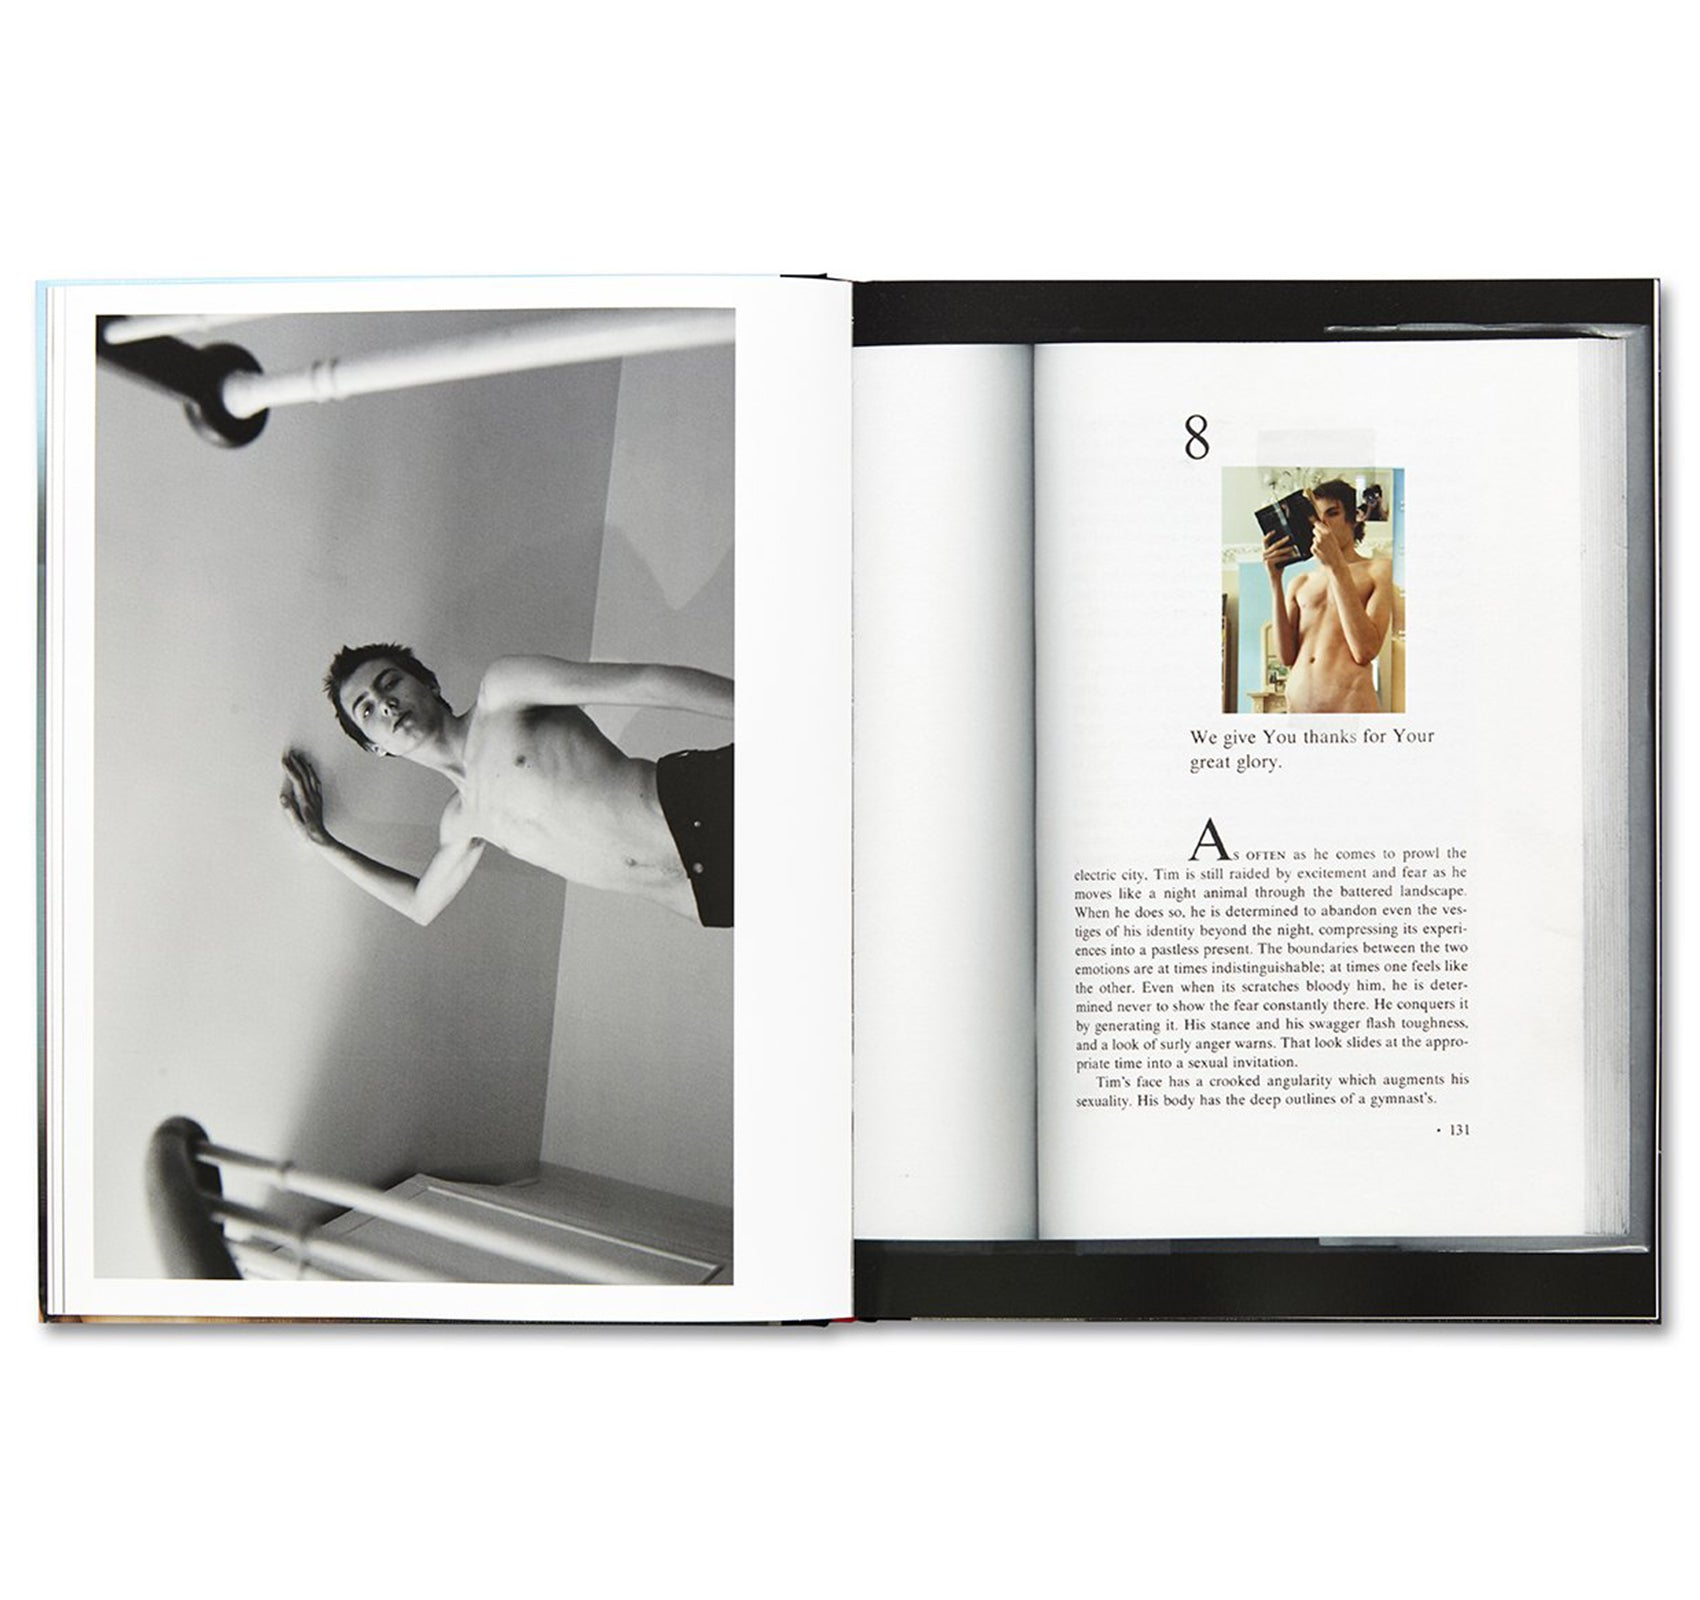 PAUL'S BOOK by Collier Schorr